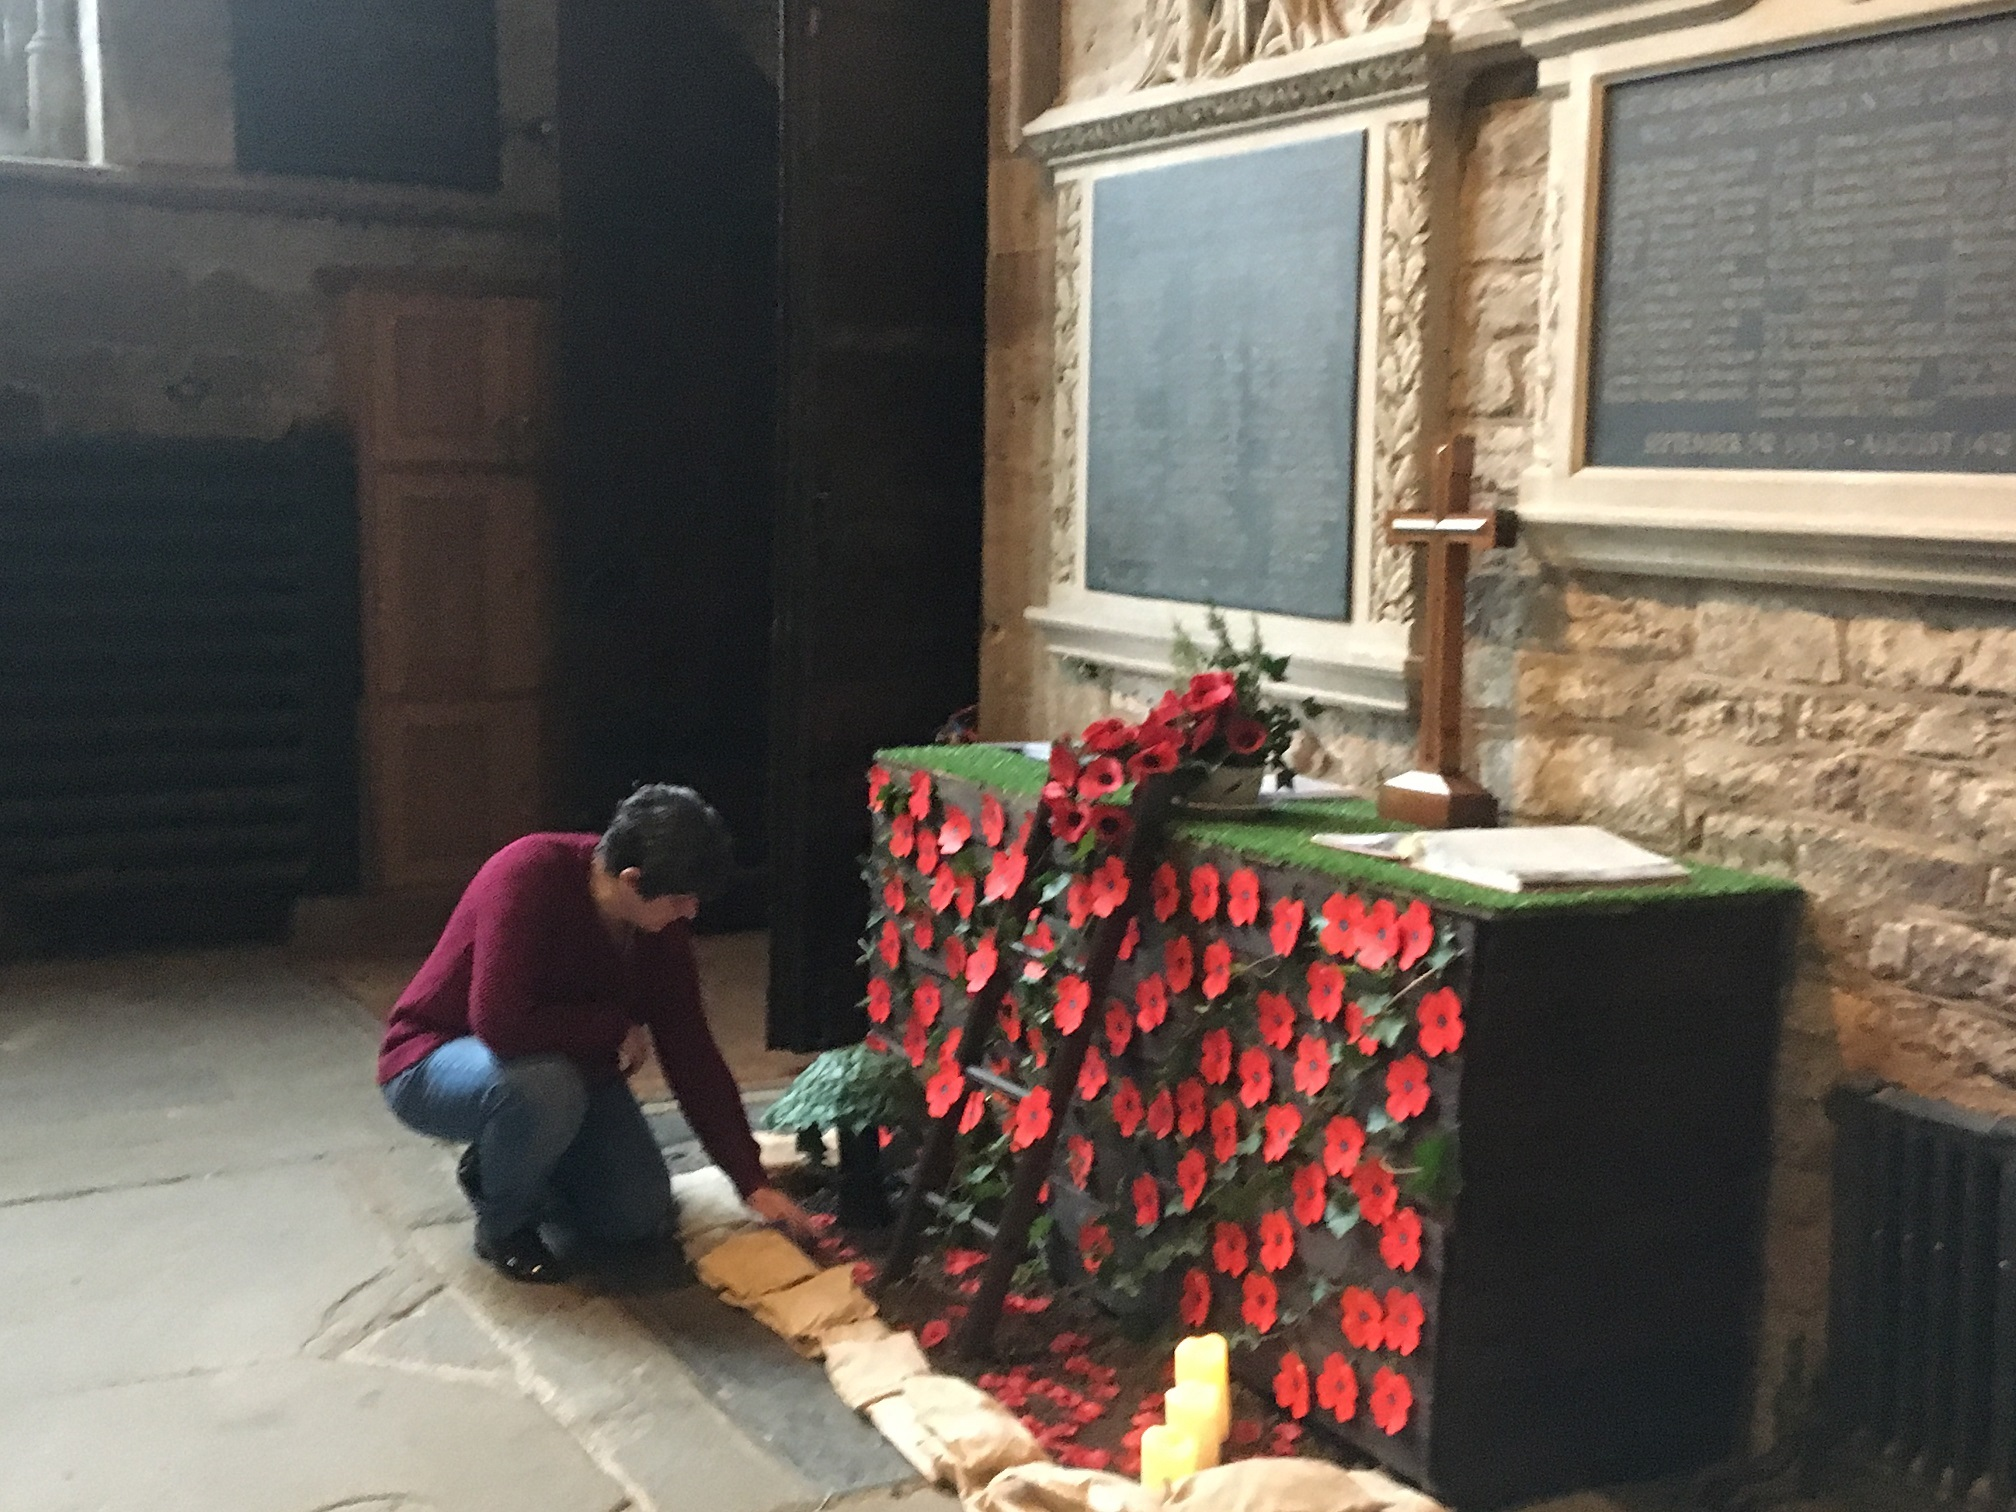 REMEMBERING: Local resident Brenda Hill sets up the trench memorial in the parish church